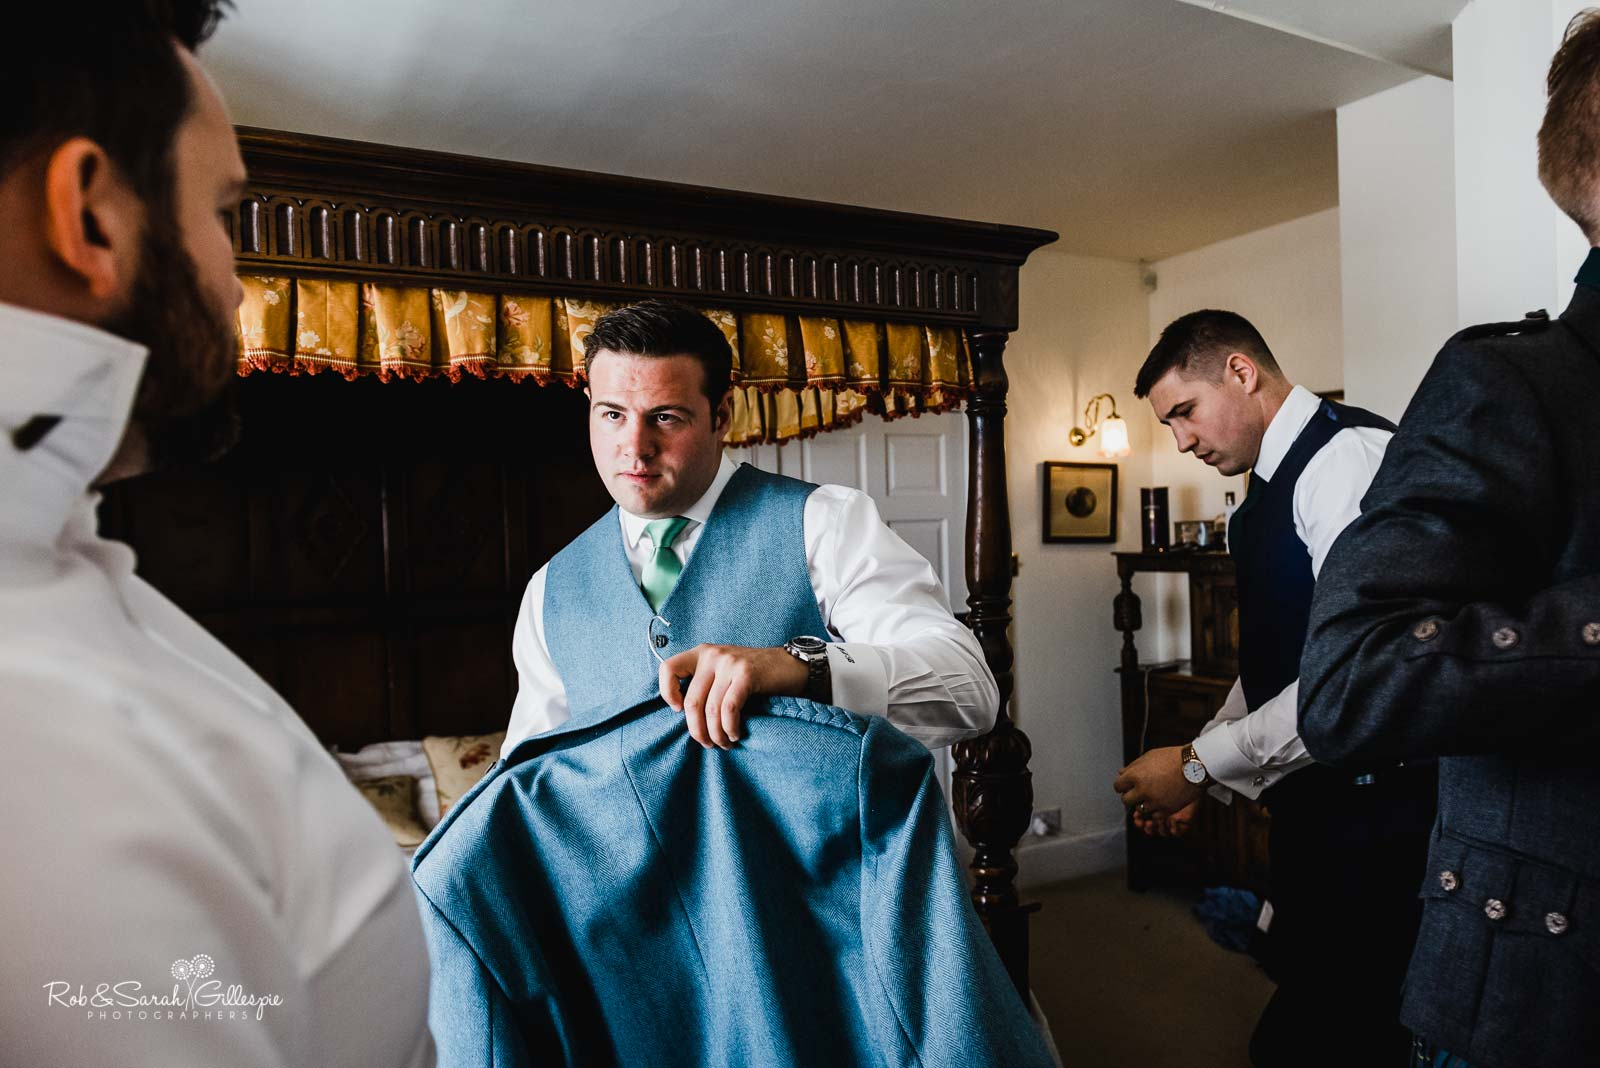 Groom and friends get ready for wedding at Wethele Manor in Warwickshire